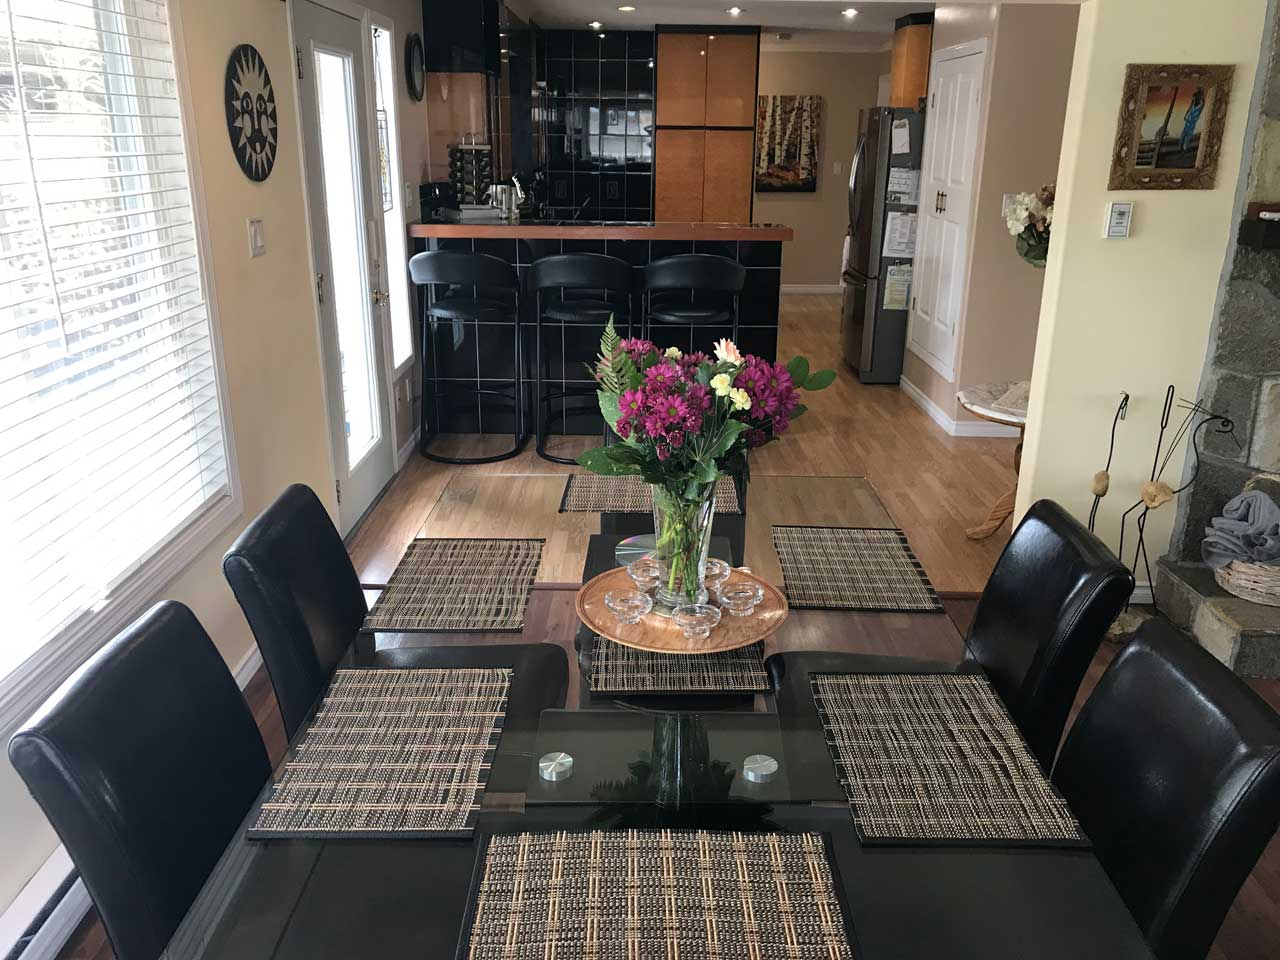 Lakeview home dining area with fresh flowers and kitchen in background